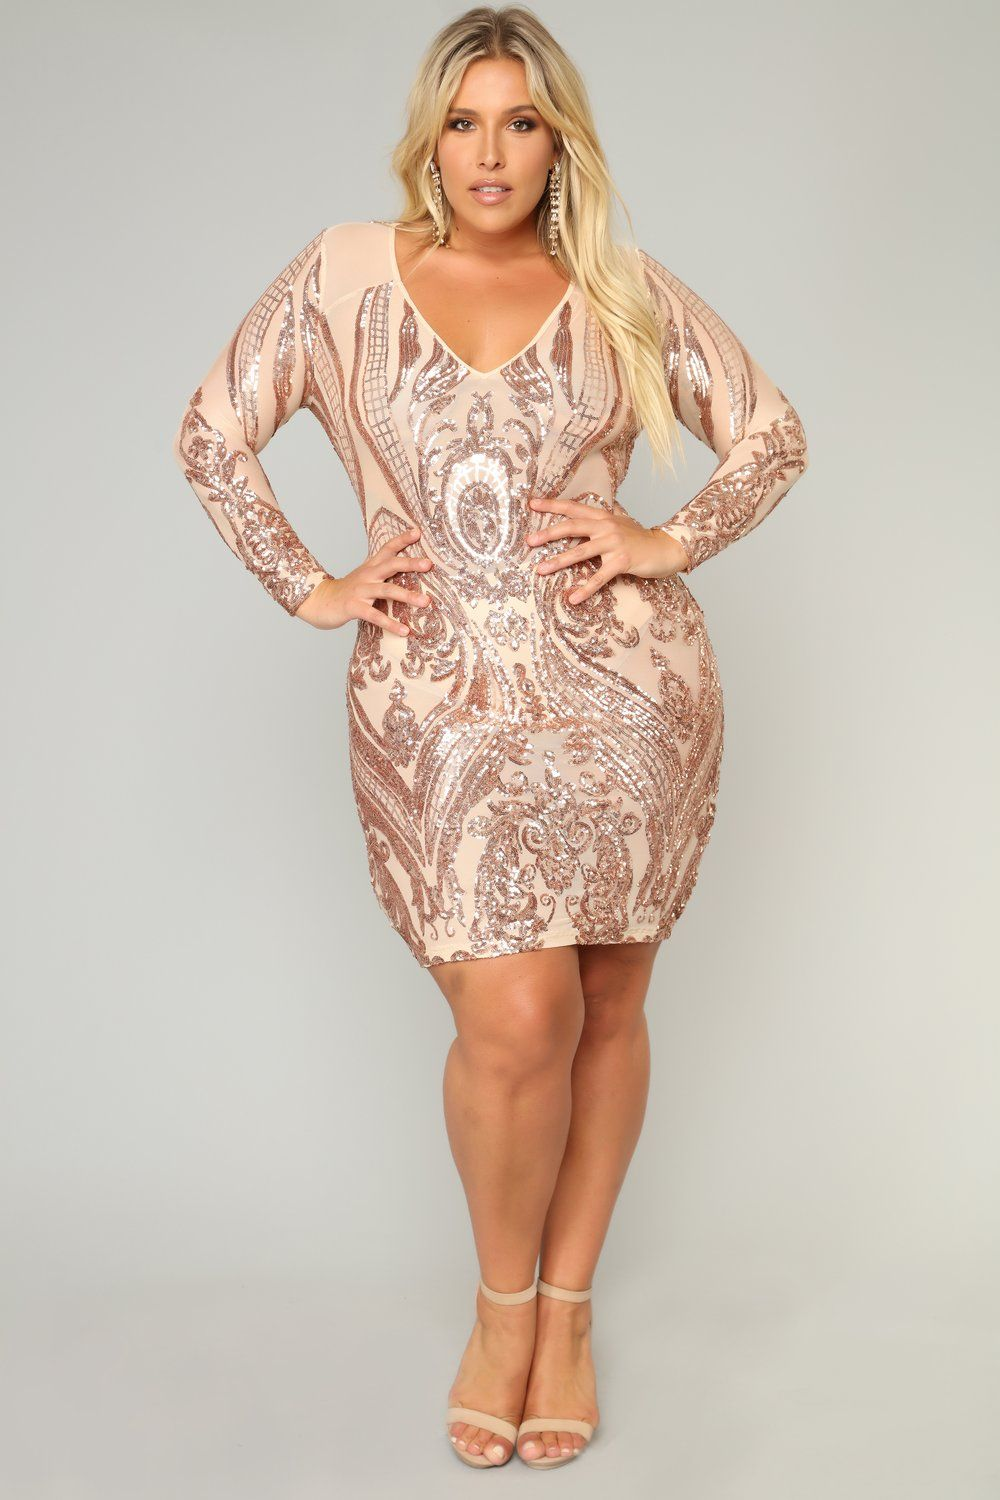 Miss Fortune Sequin Dress - Nude/Rose Gold in 2019 | Plus size ...